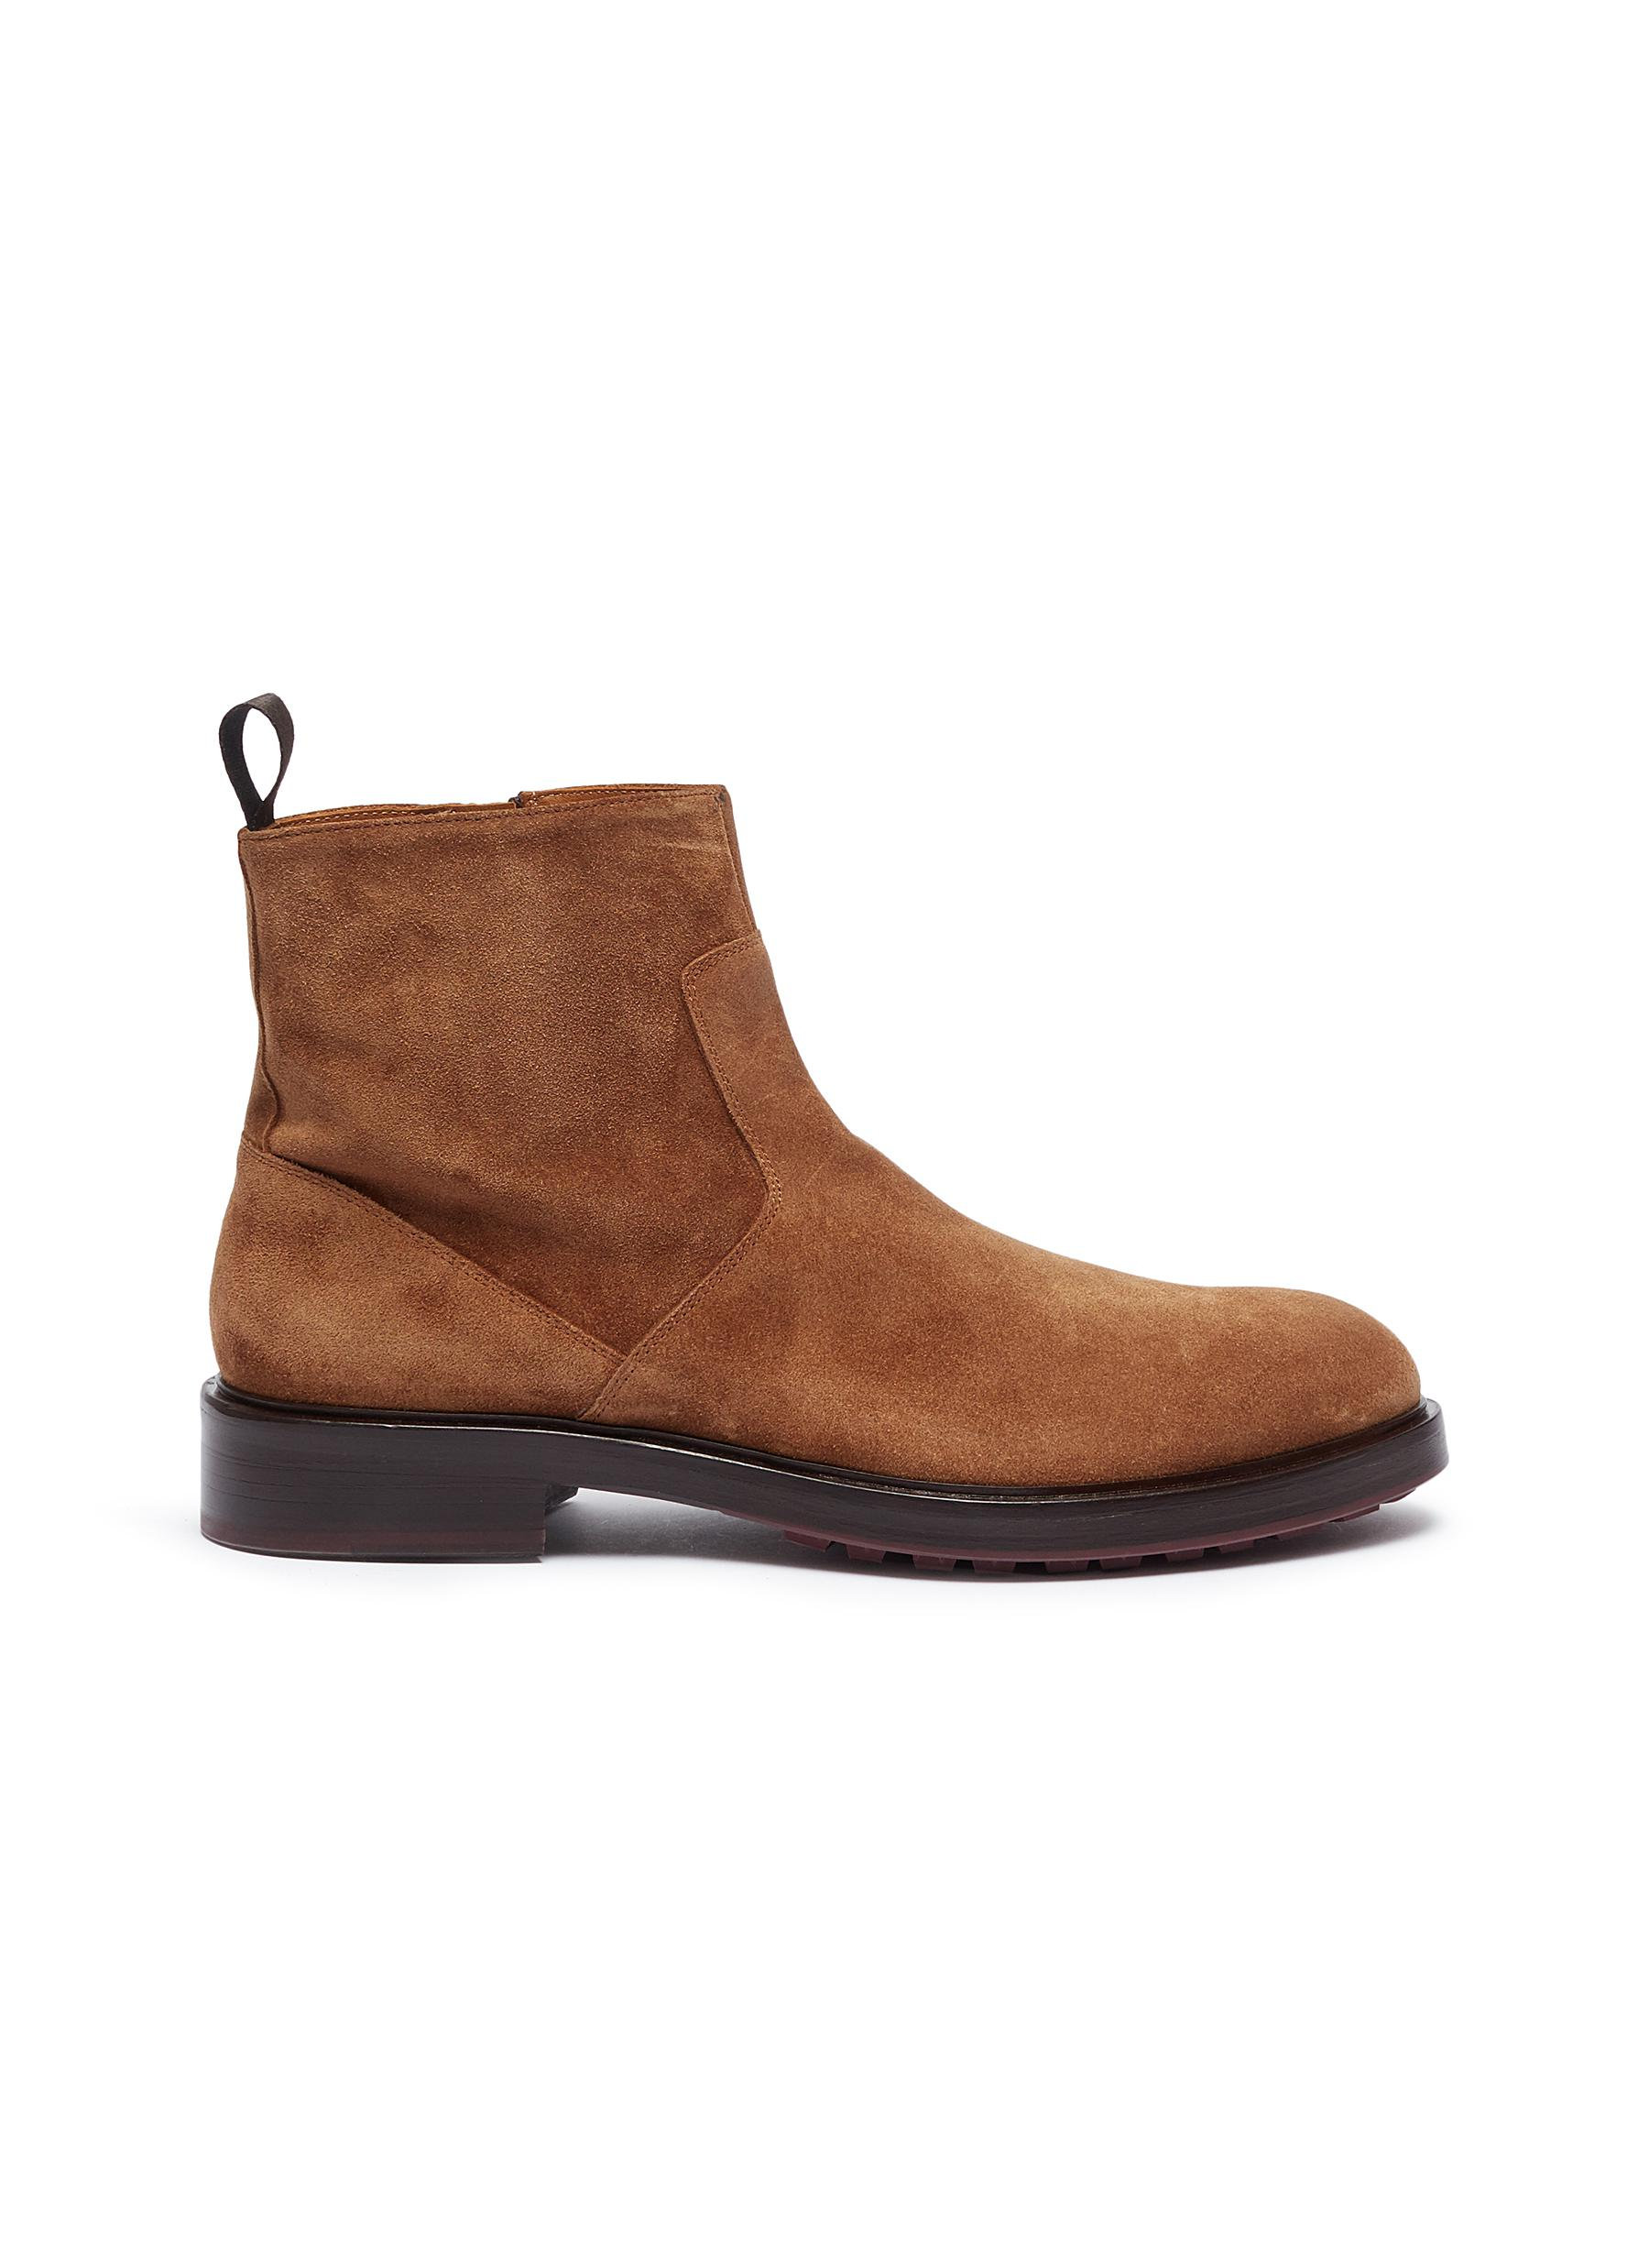 Panelled suede boots by ANTONIO MAURIZI